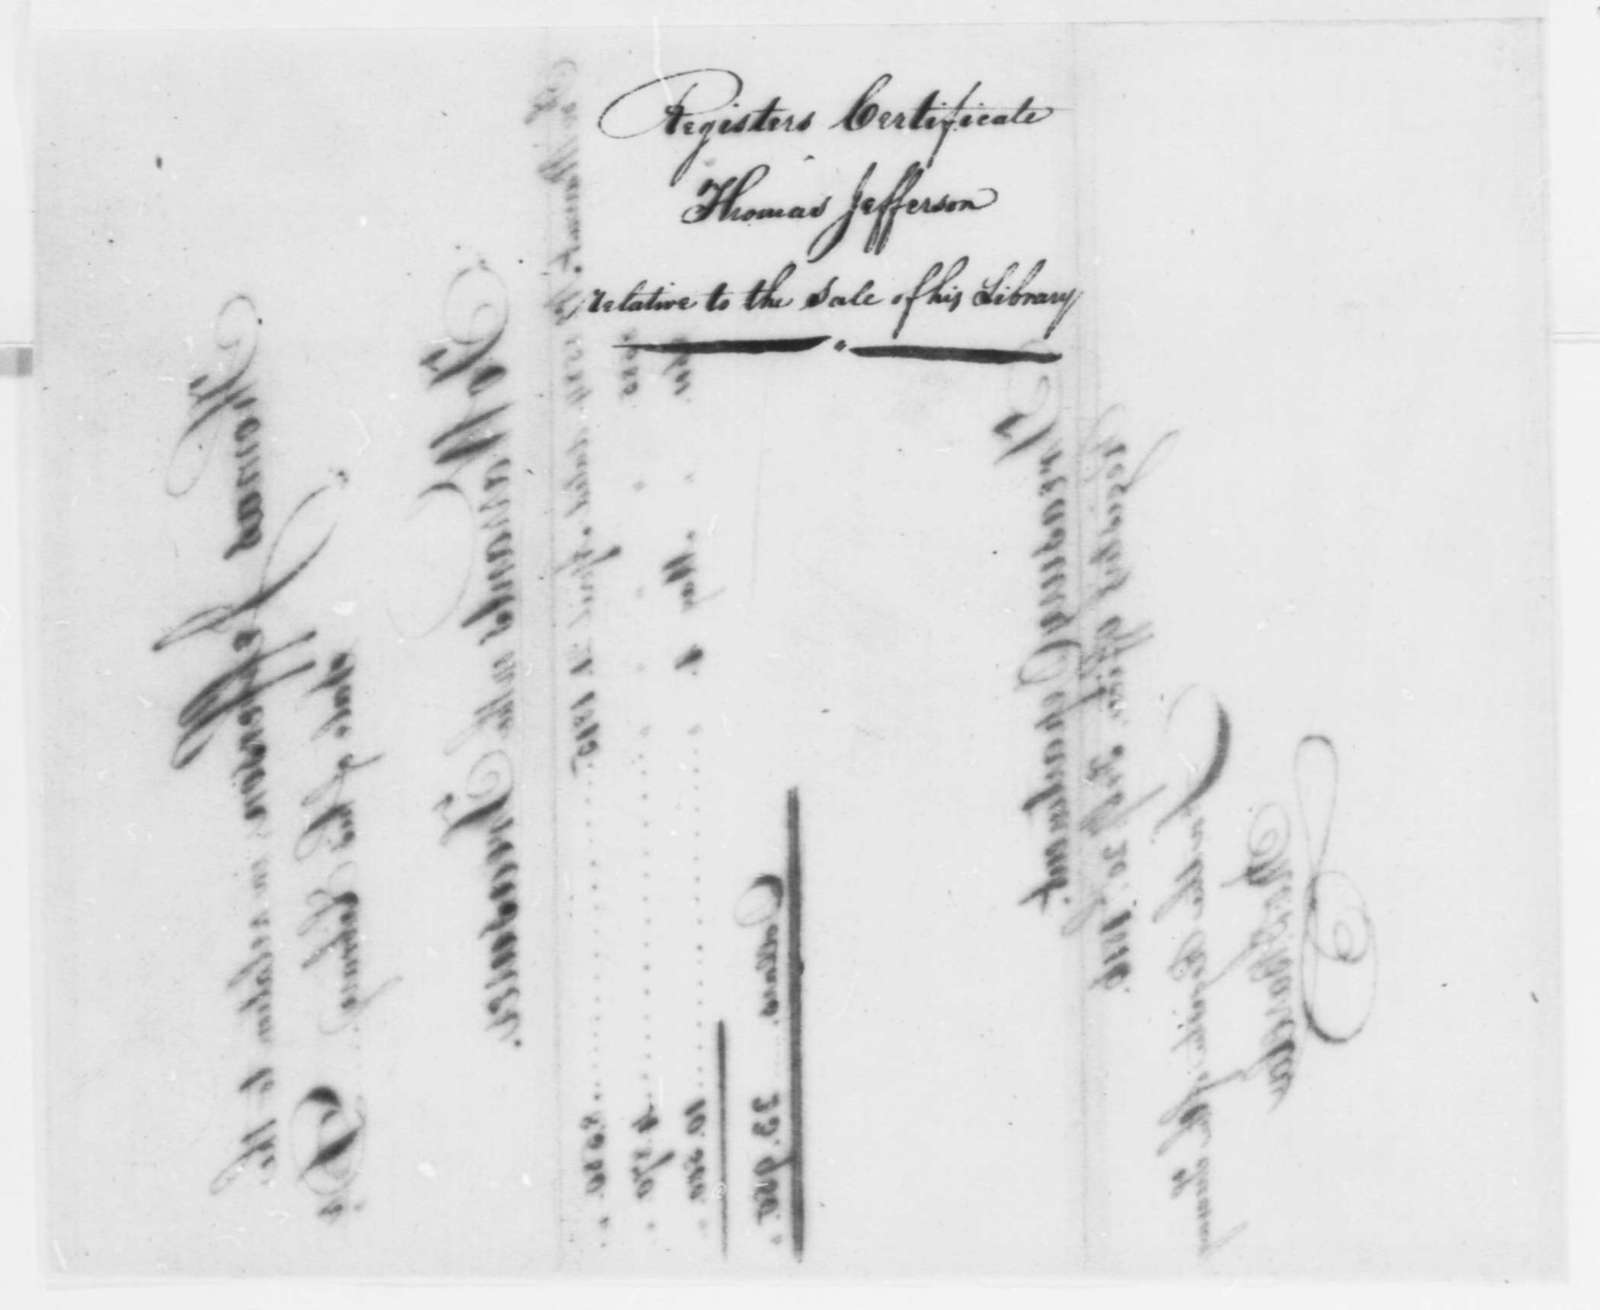 Treasury Department, February 20, 1816, Record of Warrants of Sale of Thomas Jefferson's Library